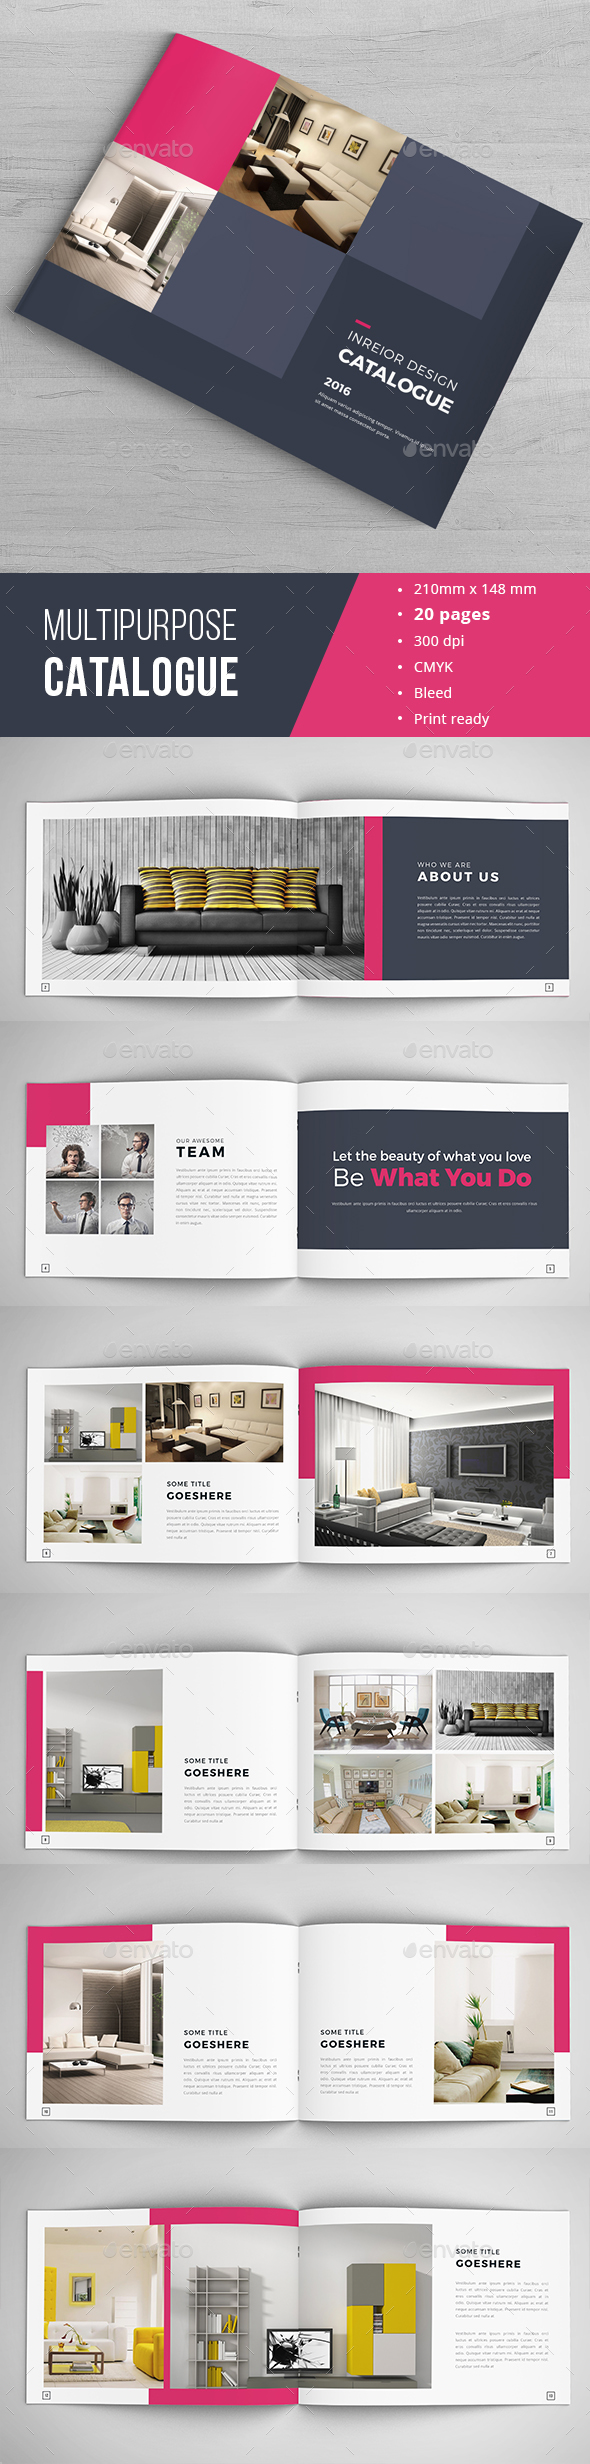 Catalog Template Indesign Free Download Images - Template Design Ideas